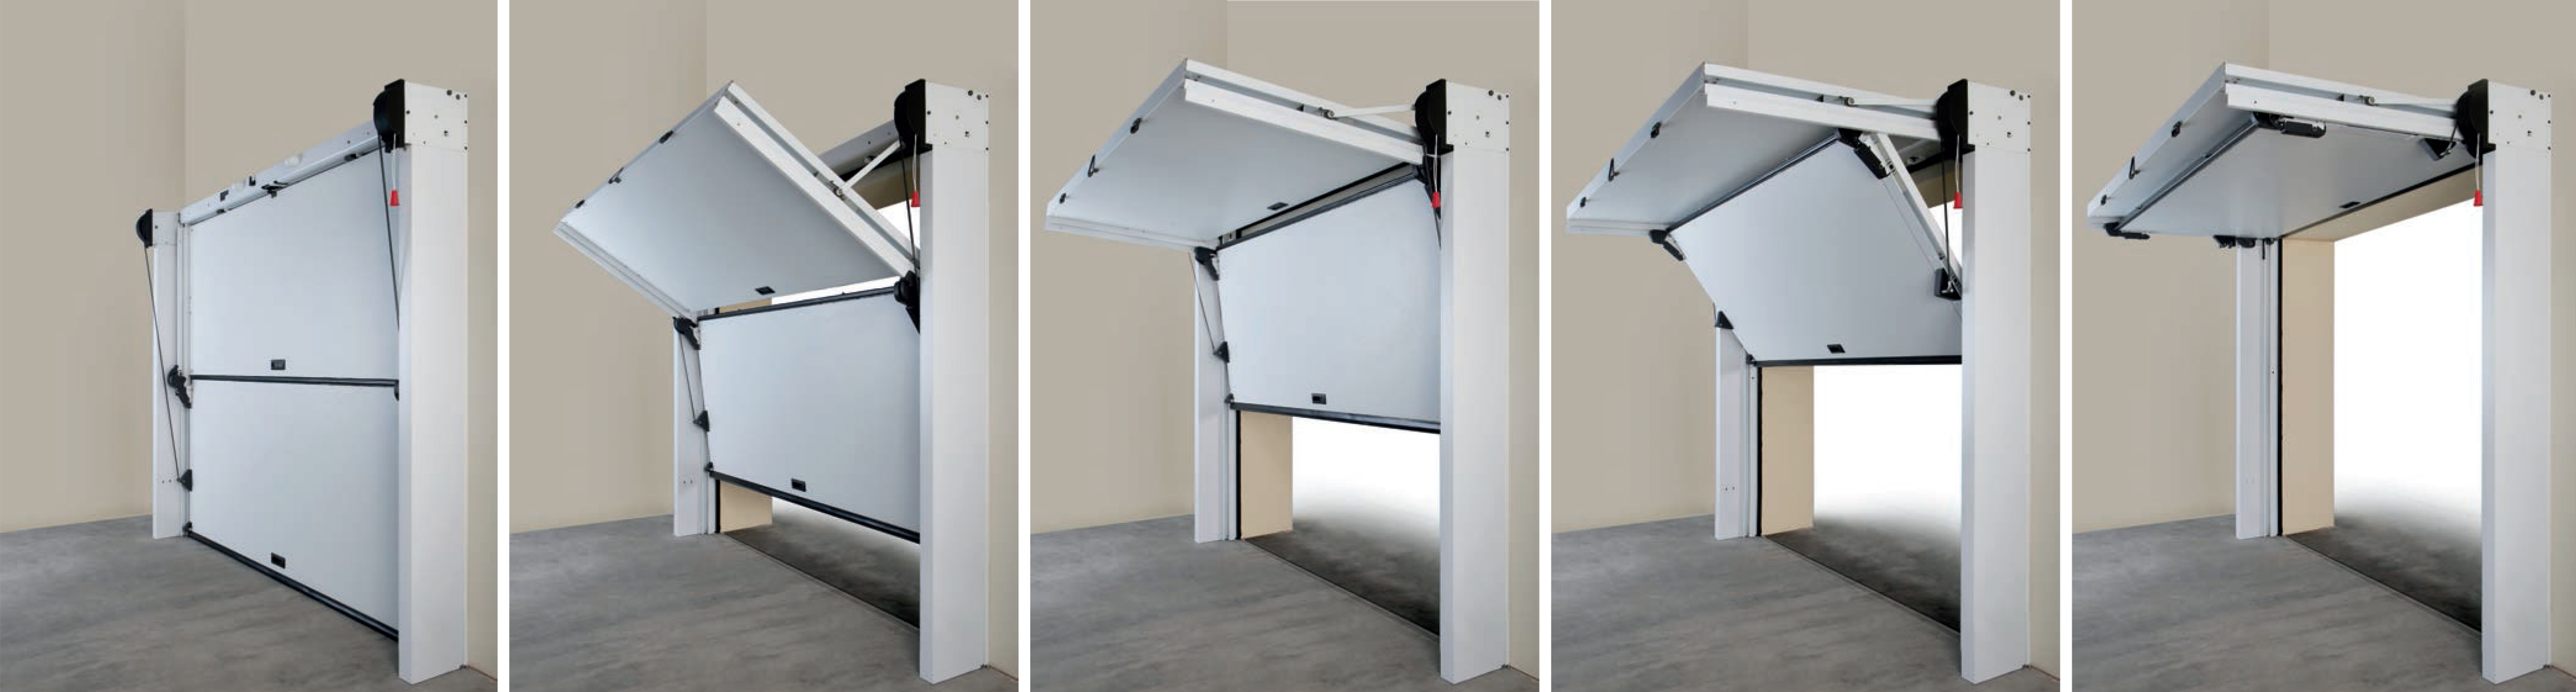 1121 #71695A Buying A Garage Door? Think Insulation. image Garage Doors With A Door 37734173